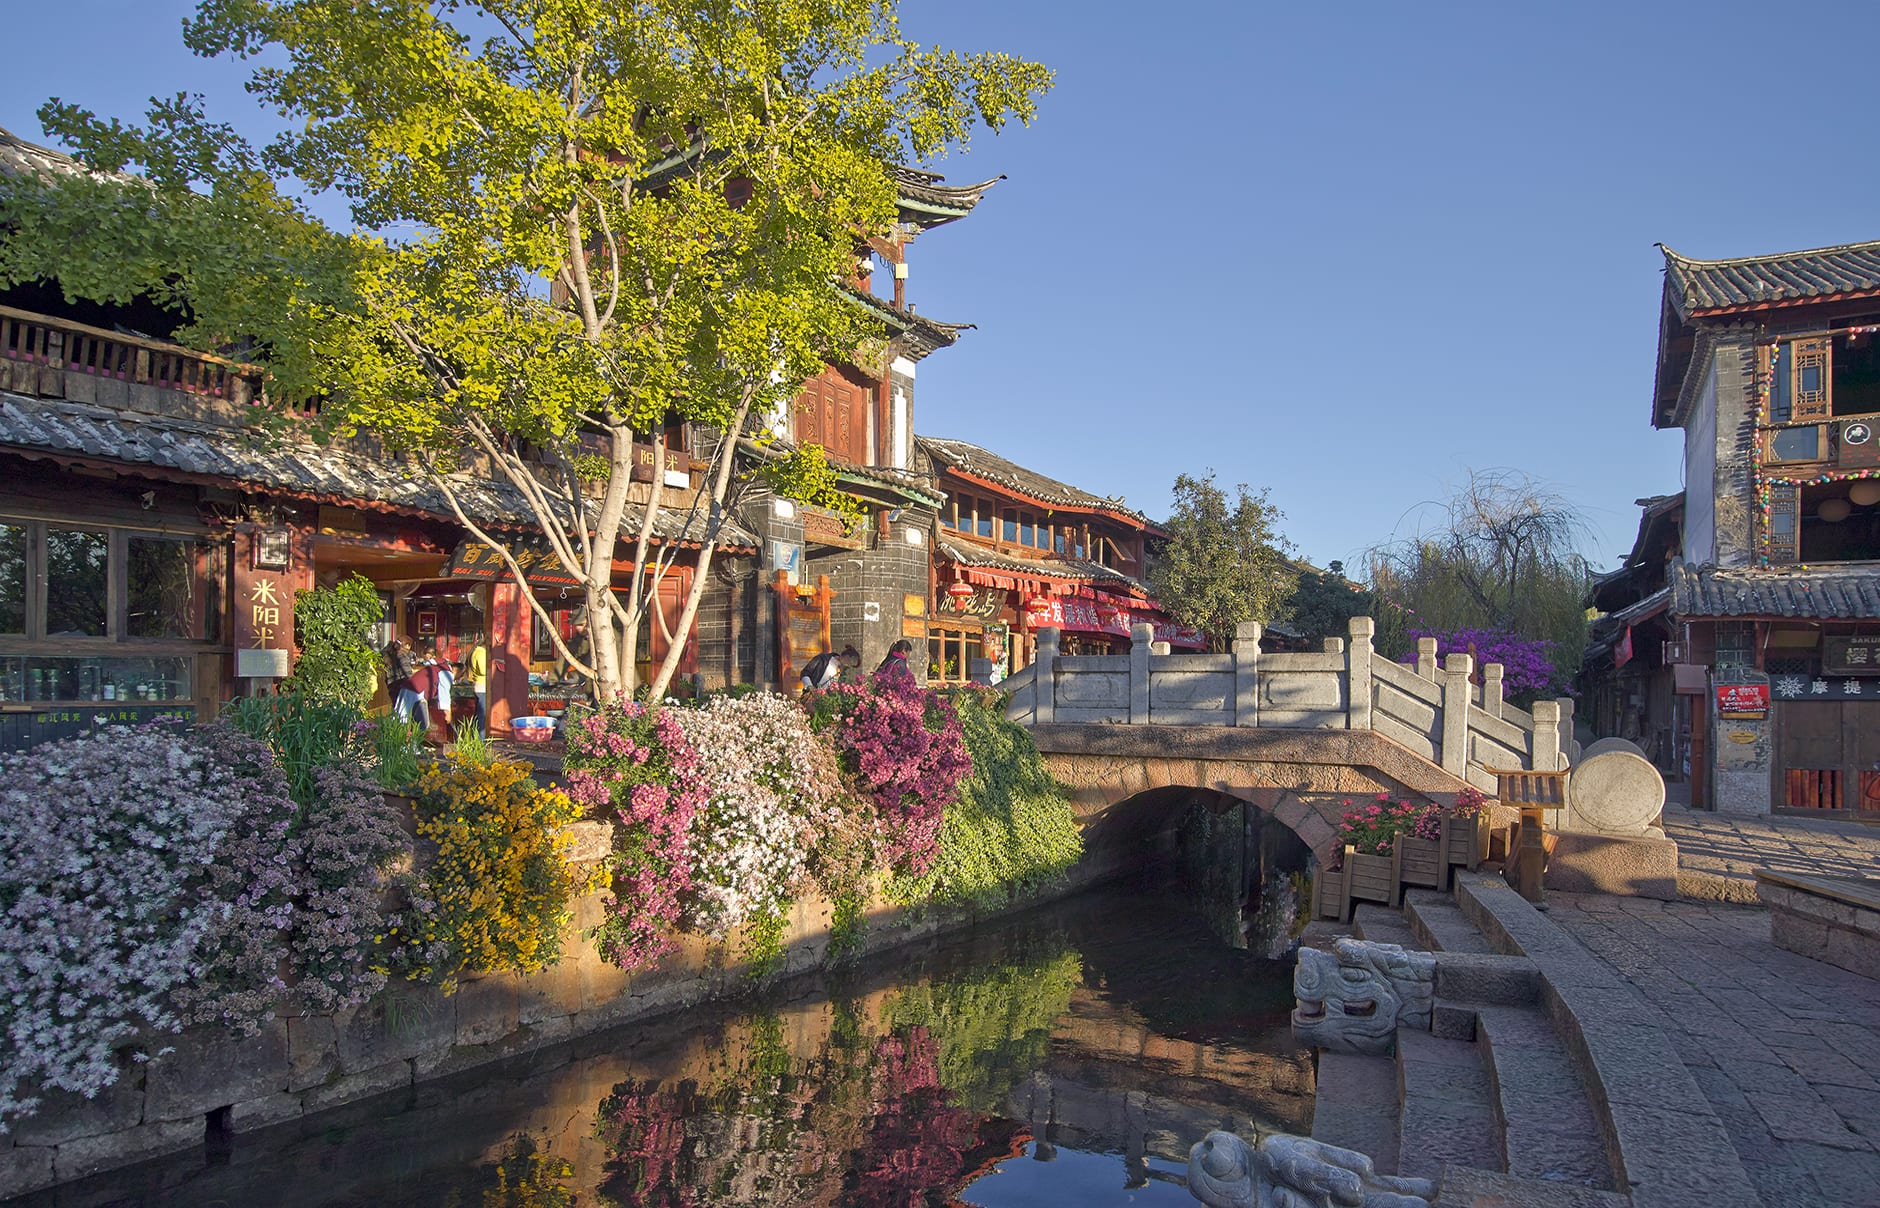 Lijiang Old Town. Amandayan, Lijiang, China. Luxury Hotel Review by TravelPlusStyle. Photo © Aman Resorts